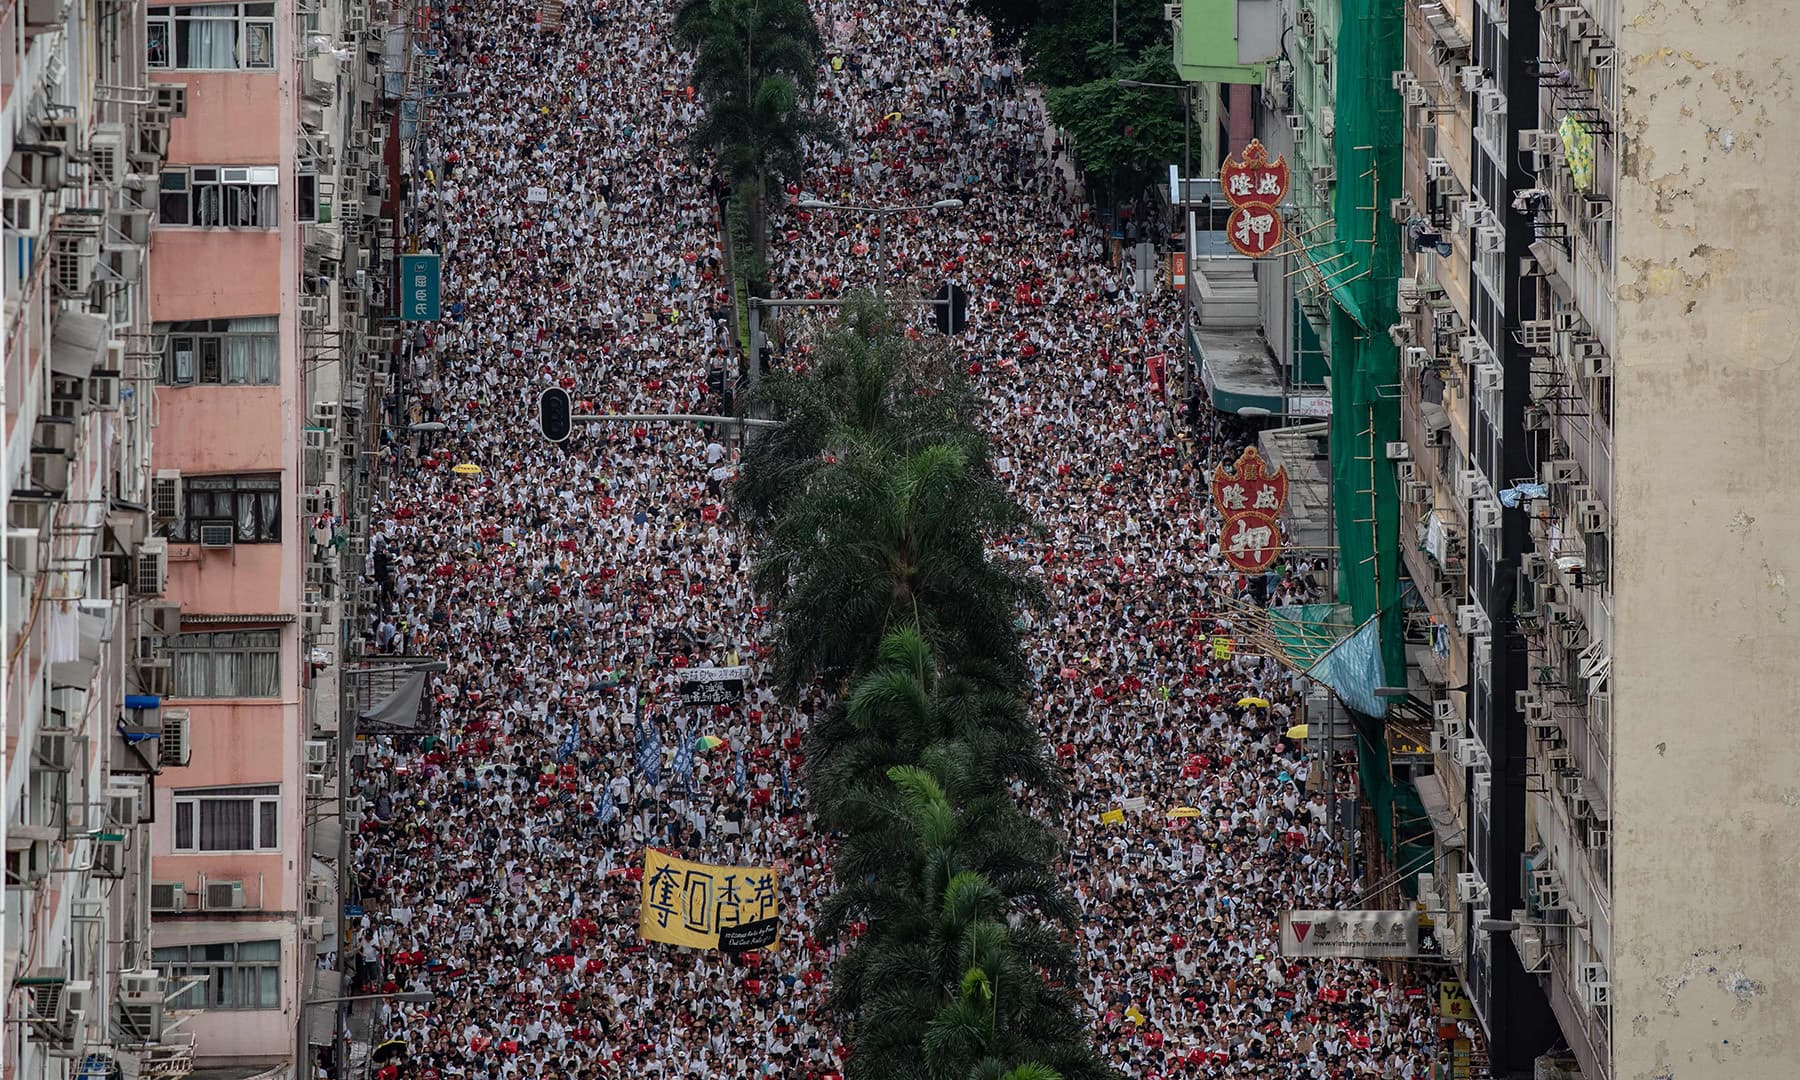 Protesters march during a rally against a controversial extradition law proposal in Hong Kong on June 9. — AFP